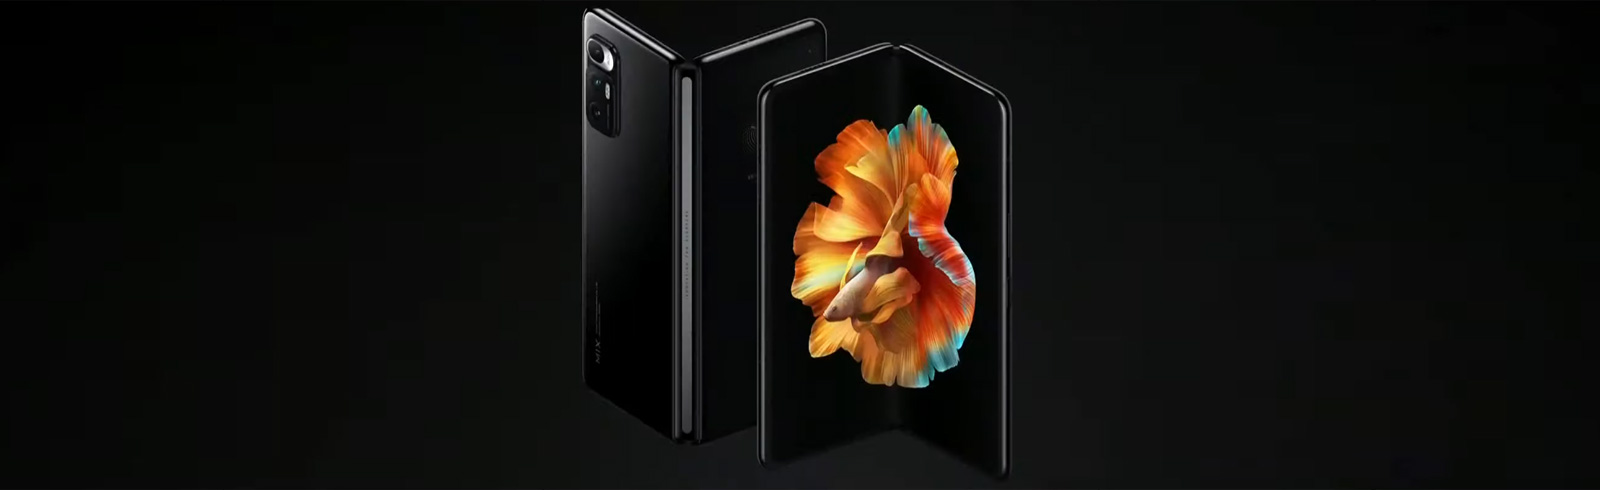 Xiaomi Mi MIX Fold is official with an 8.01-inch AMOLED foldable display